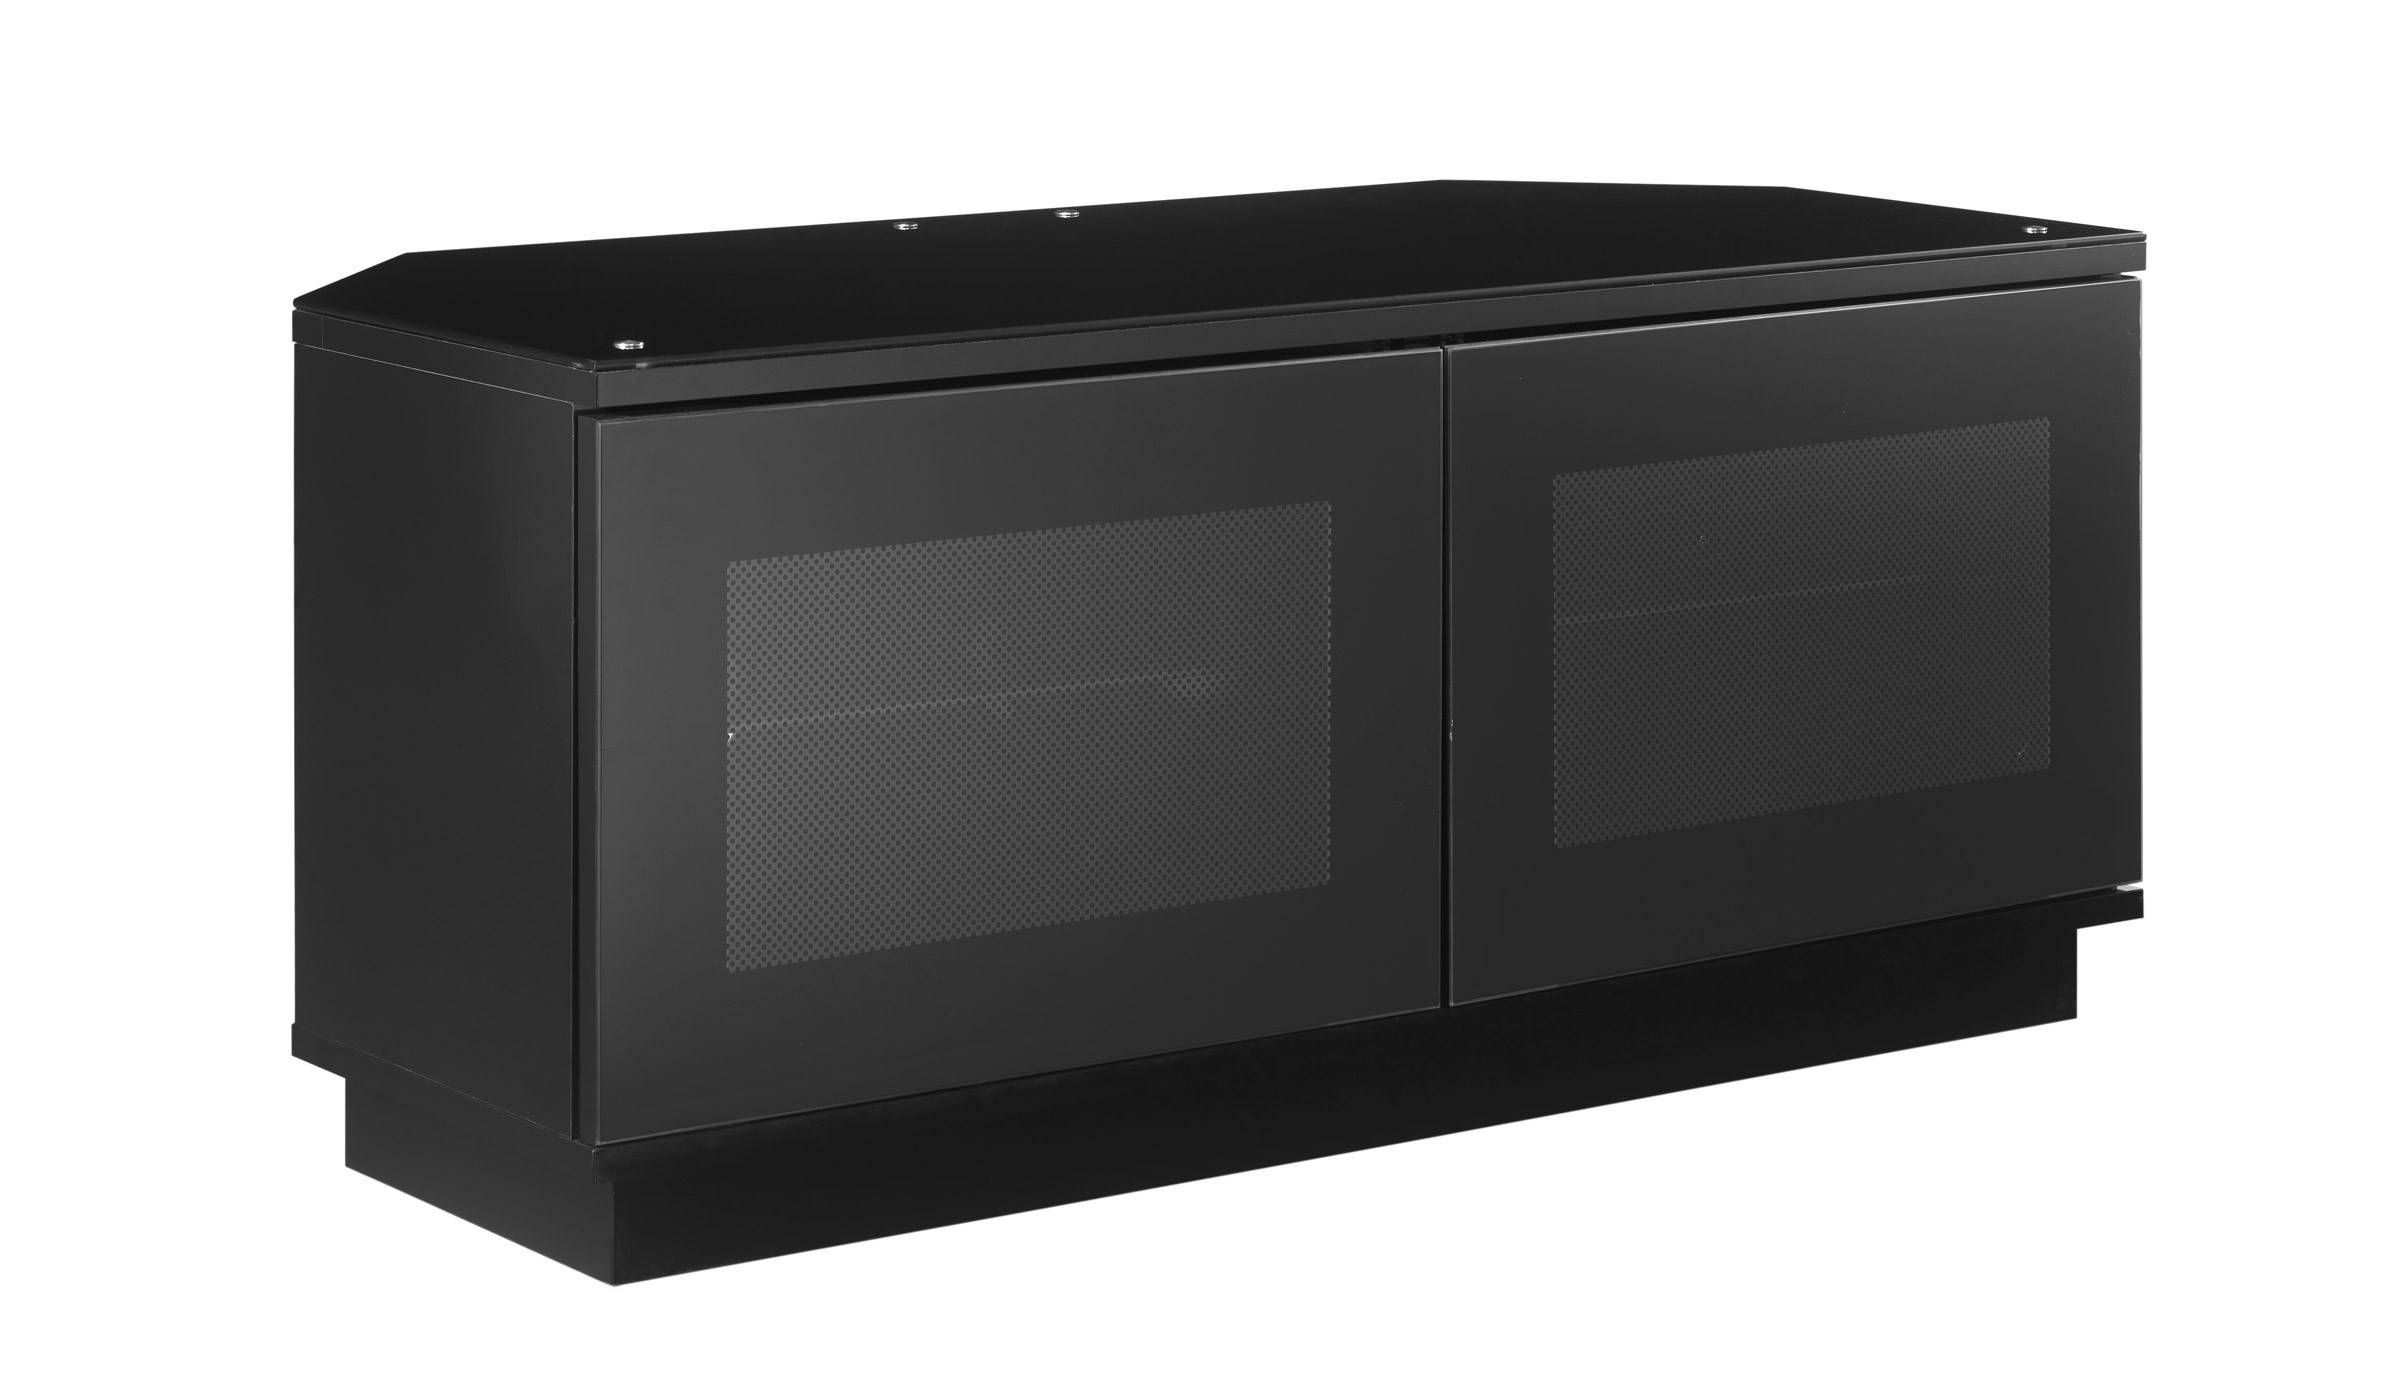 Small Black Tv Stand Cabinet With Door For Corner - Decofurnish intended for Black Corner Tv Cabinets (Image 12 of 15)